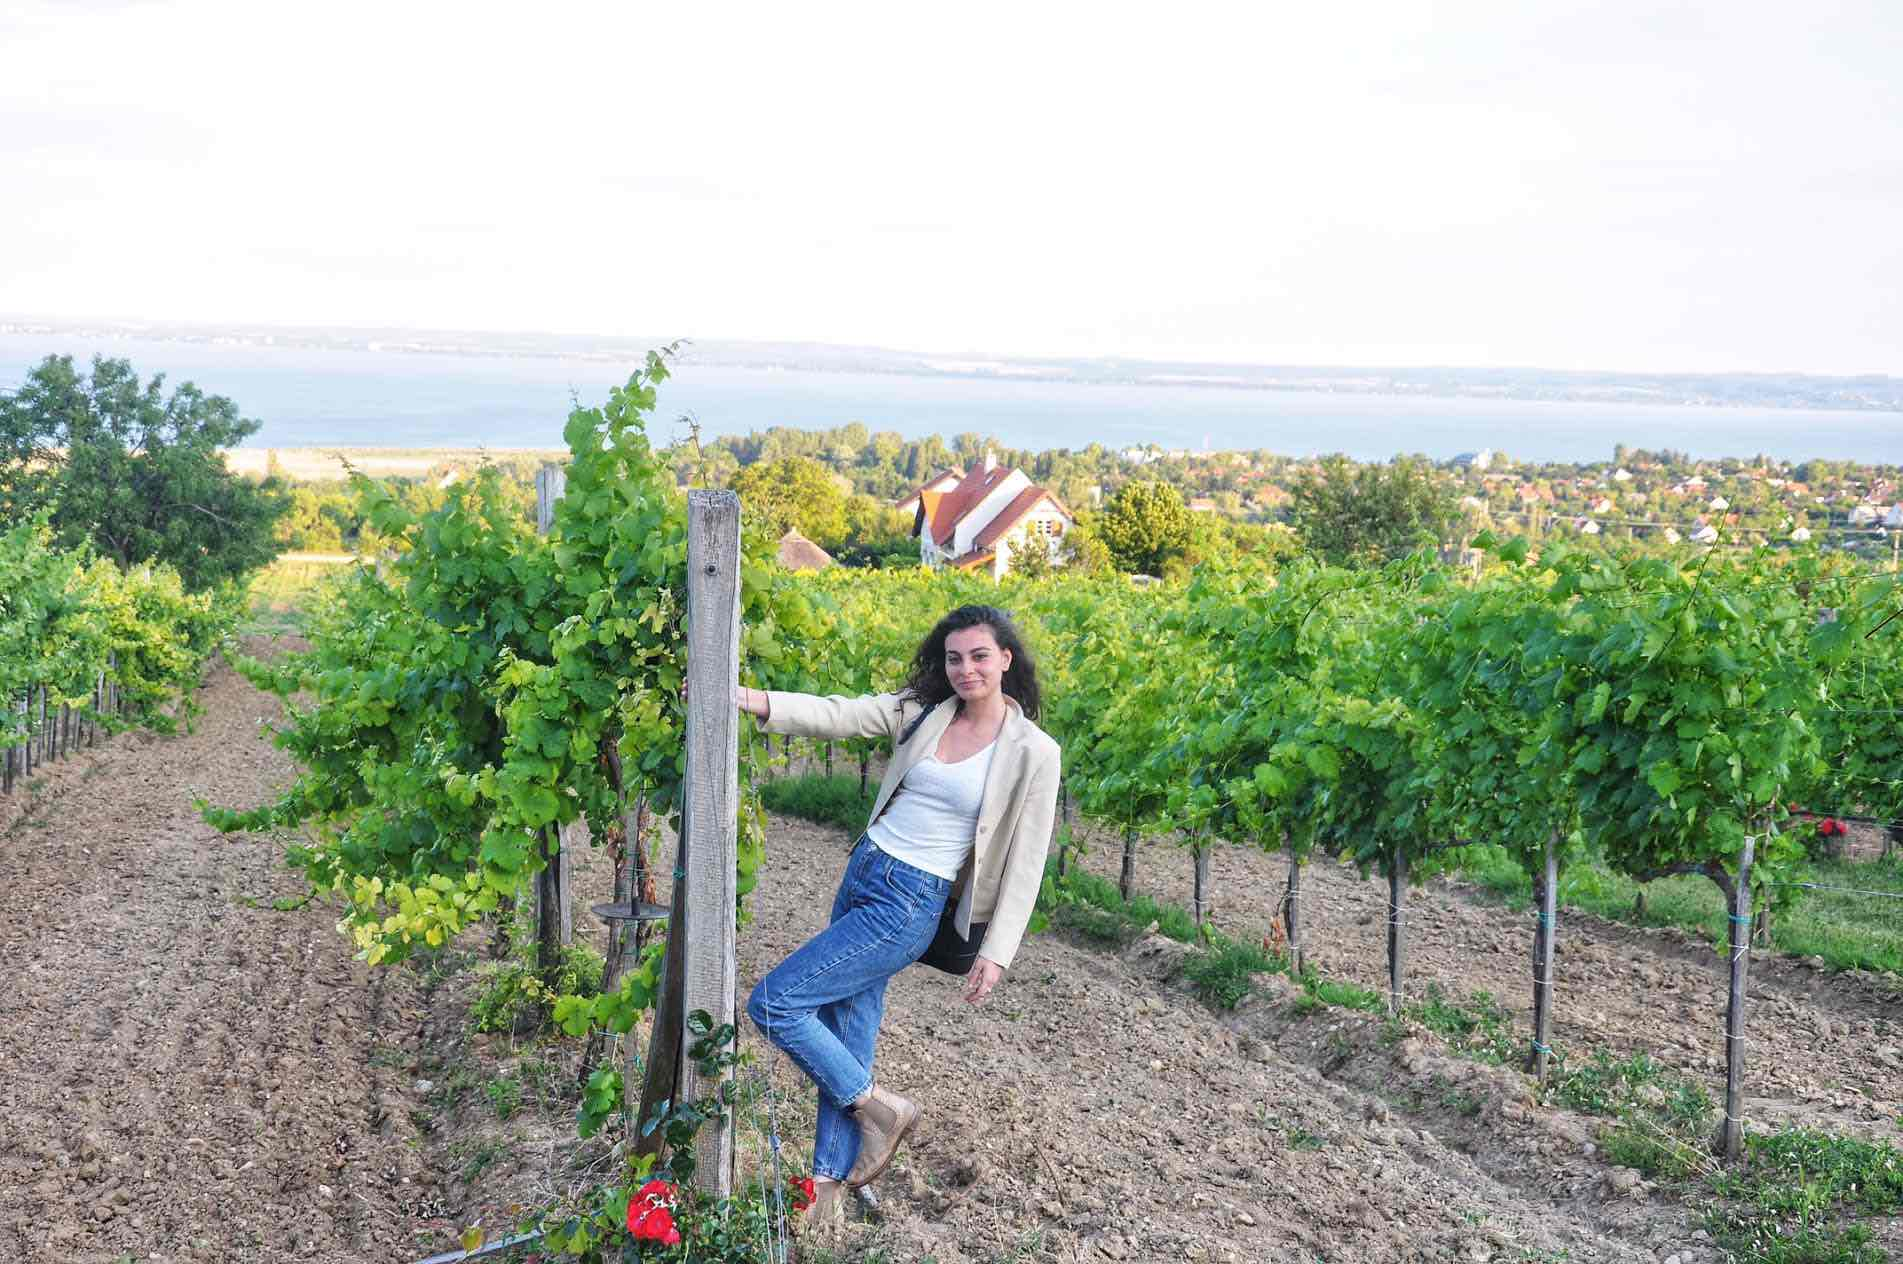 Lake Balaton wineries and vineyards